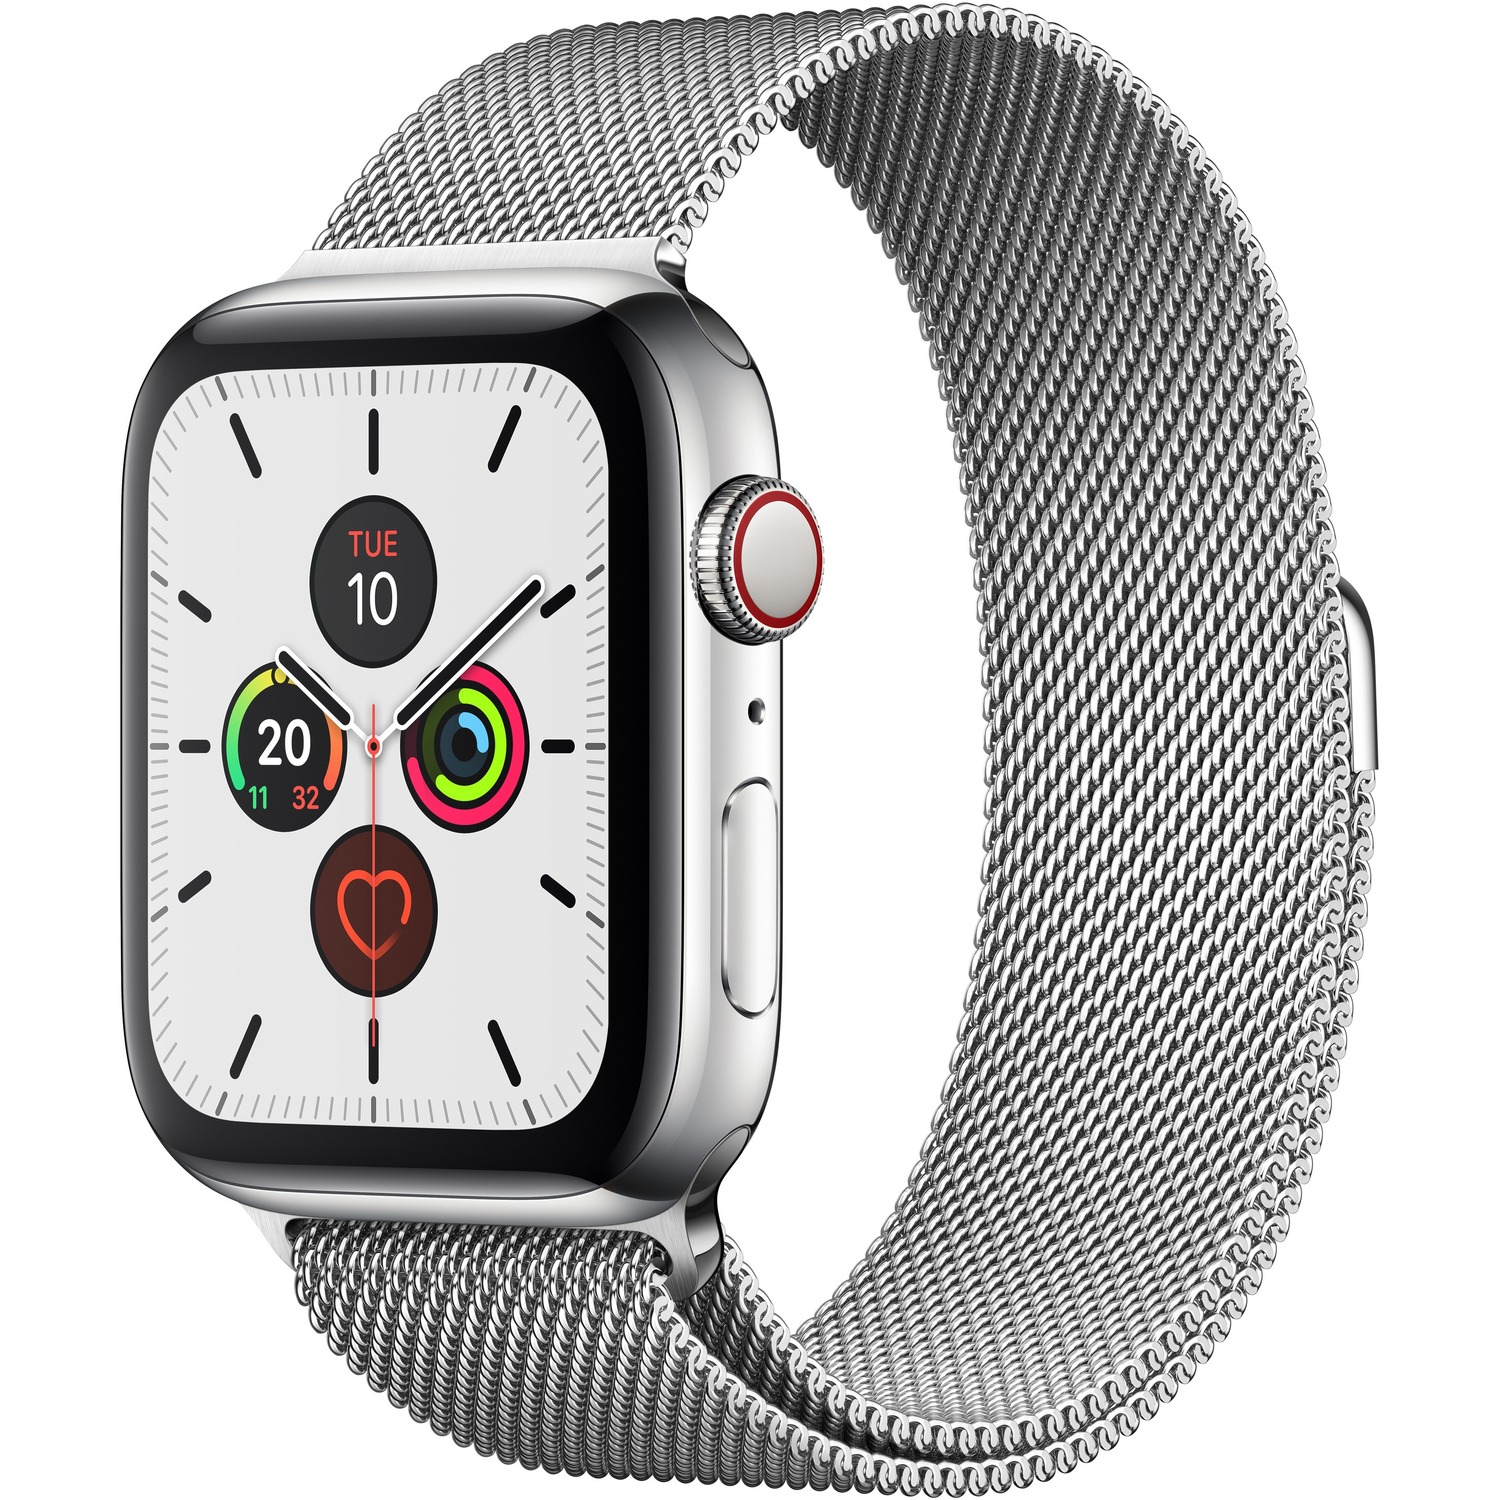 Apple Watch Series 5 Smart Watch - Wrist Wearable - Silver Band - Stainless Steel Case - Cellular Phone Capability - LTE, UMTS